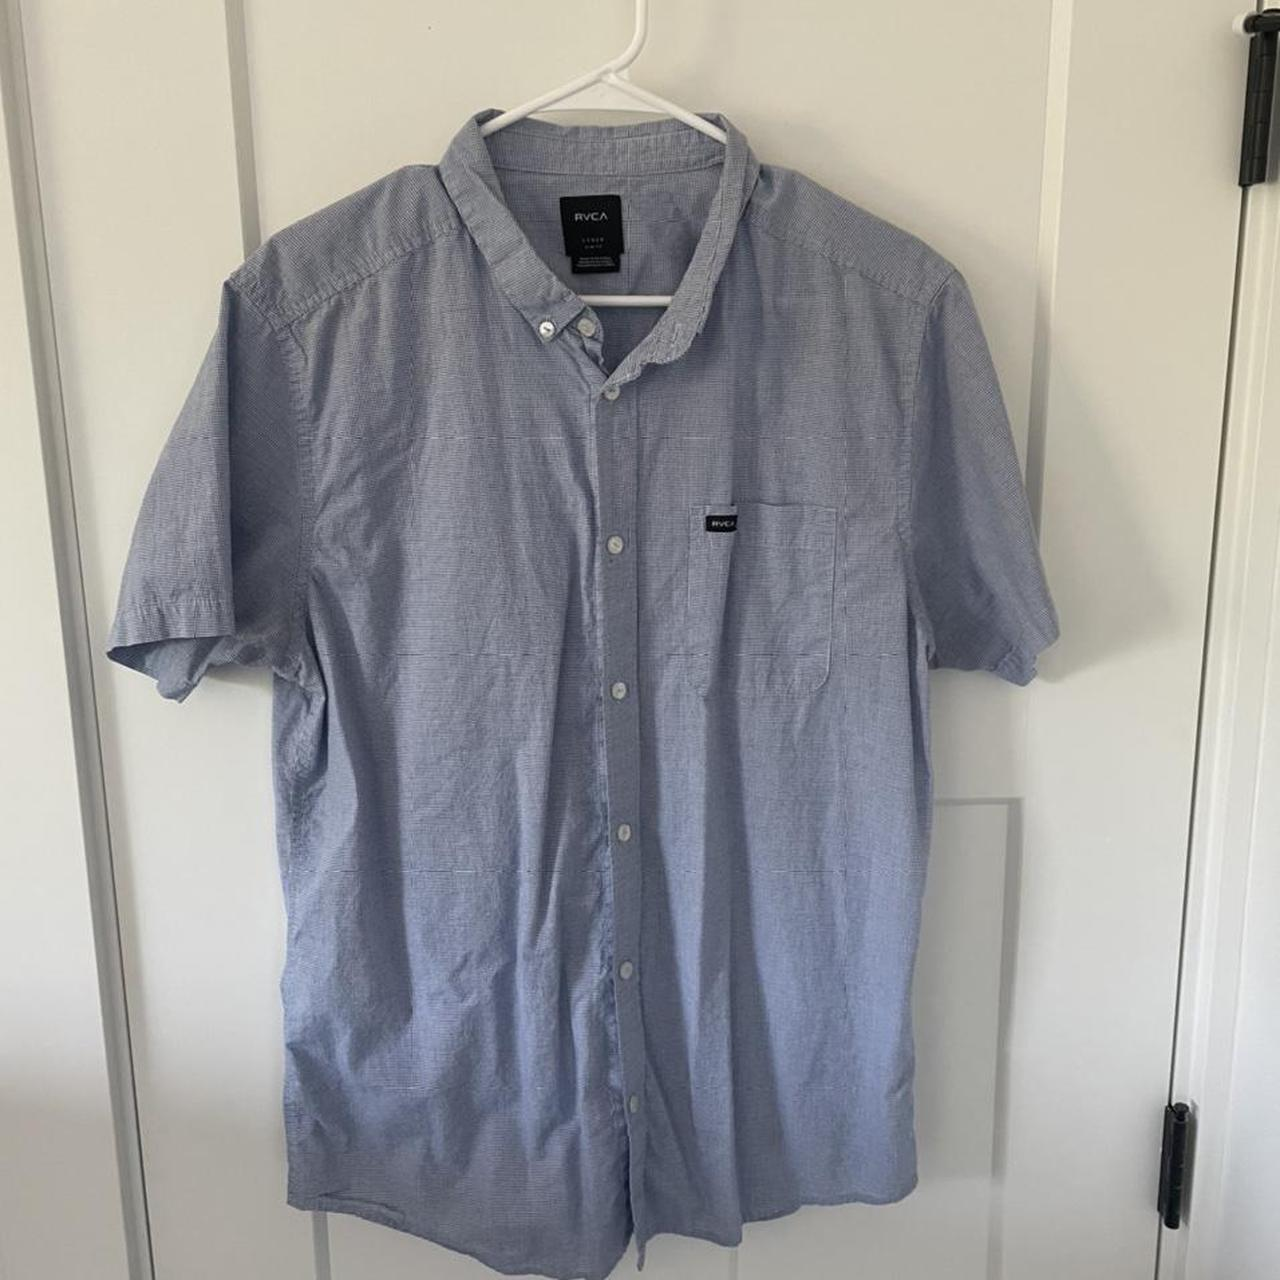 Product Image 1 - RVCA Summer Button Up Short Sleeve